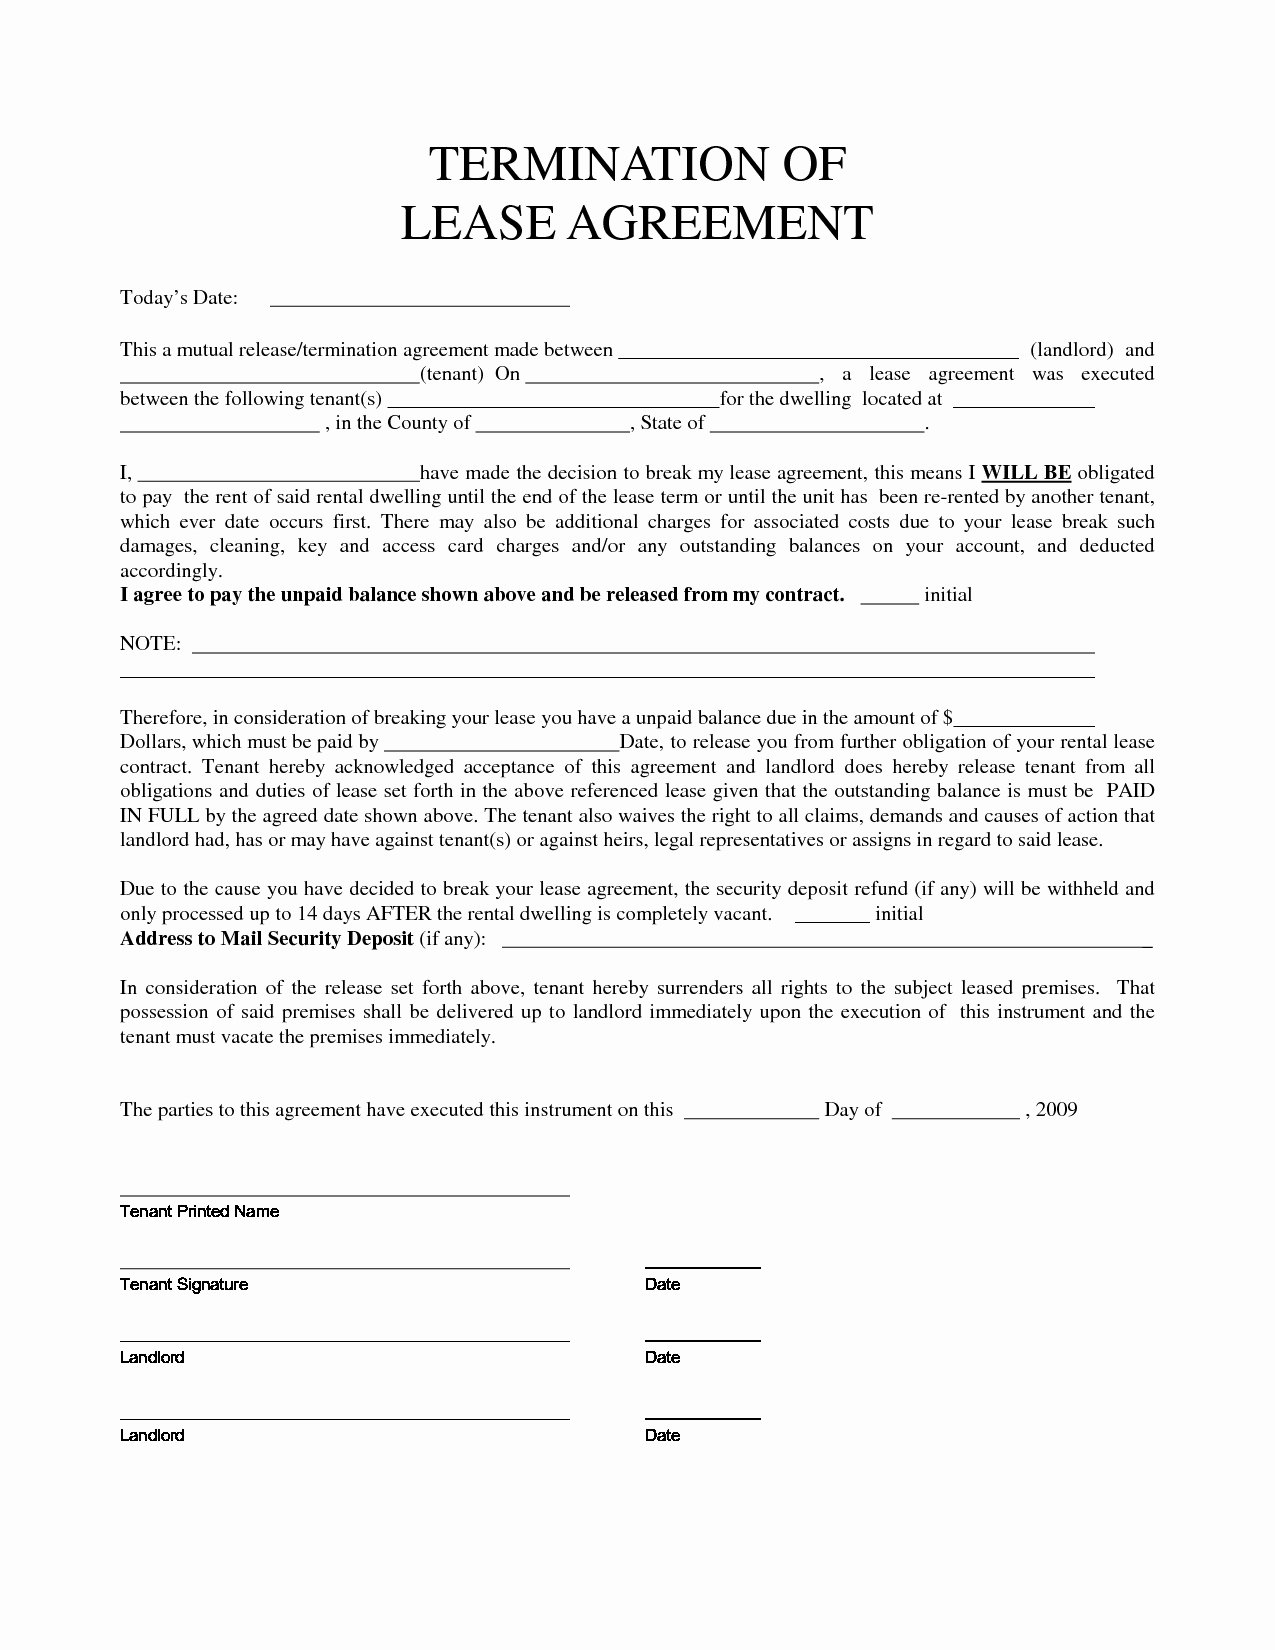 Termination Of Contract Template Fresh Early Termination Lease Agreement Template Templates